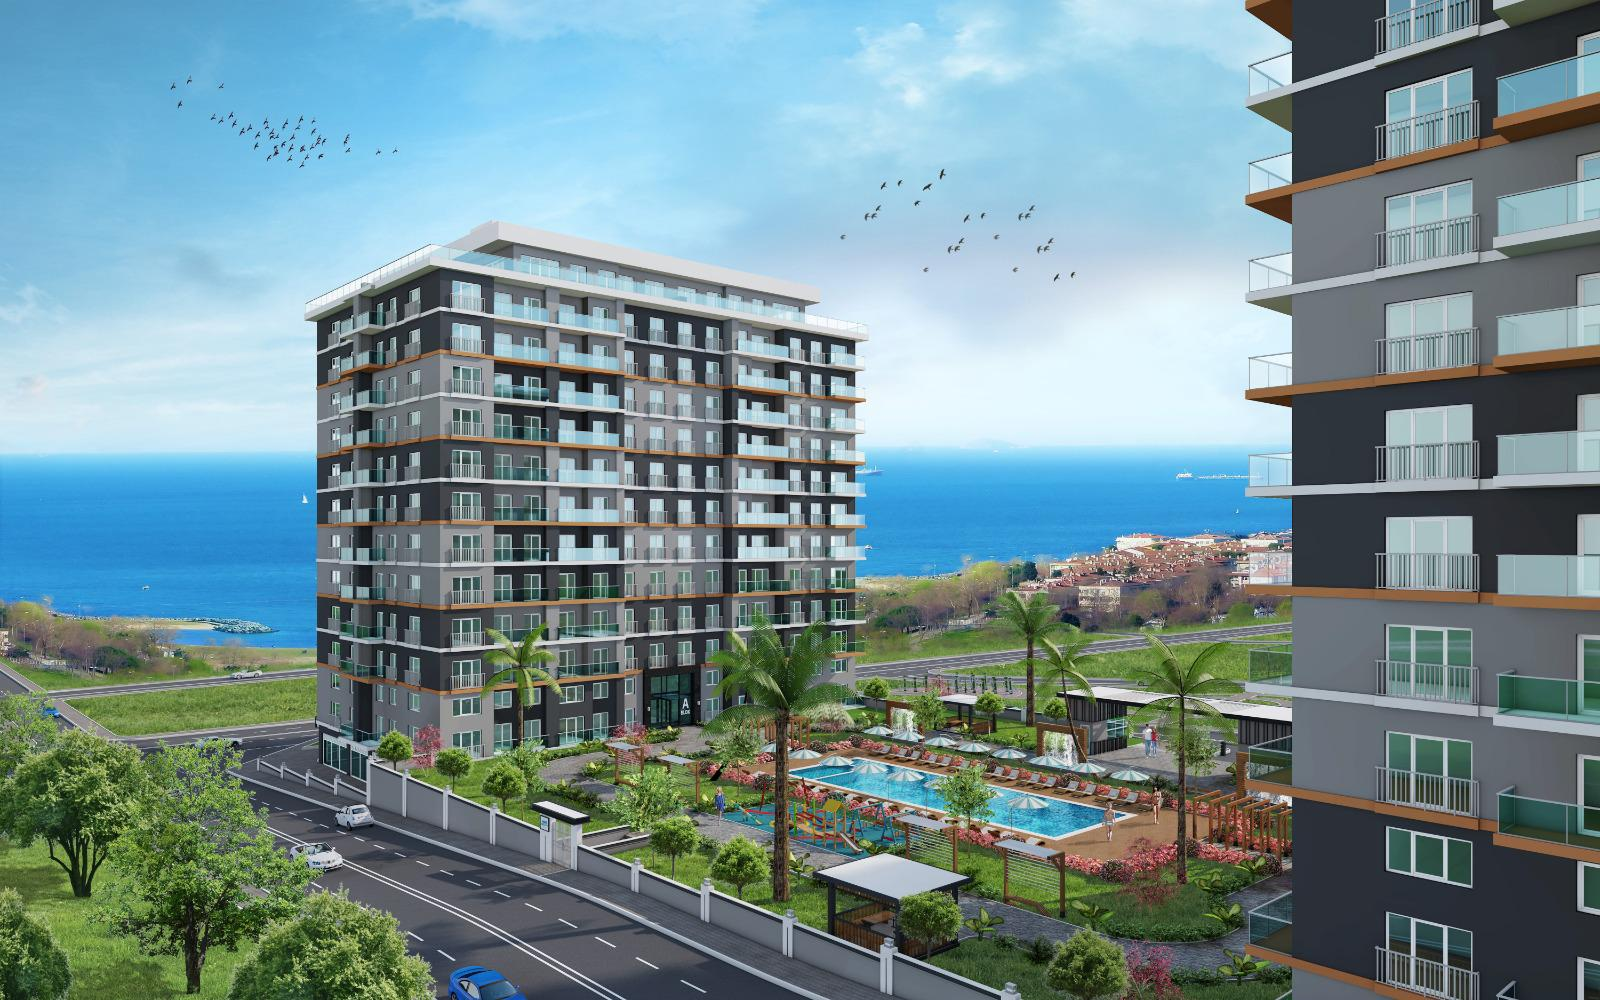 Luxury apartments with sea view suitable for investment in Istanbul Büyükçekmece Kumburgaz